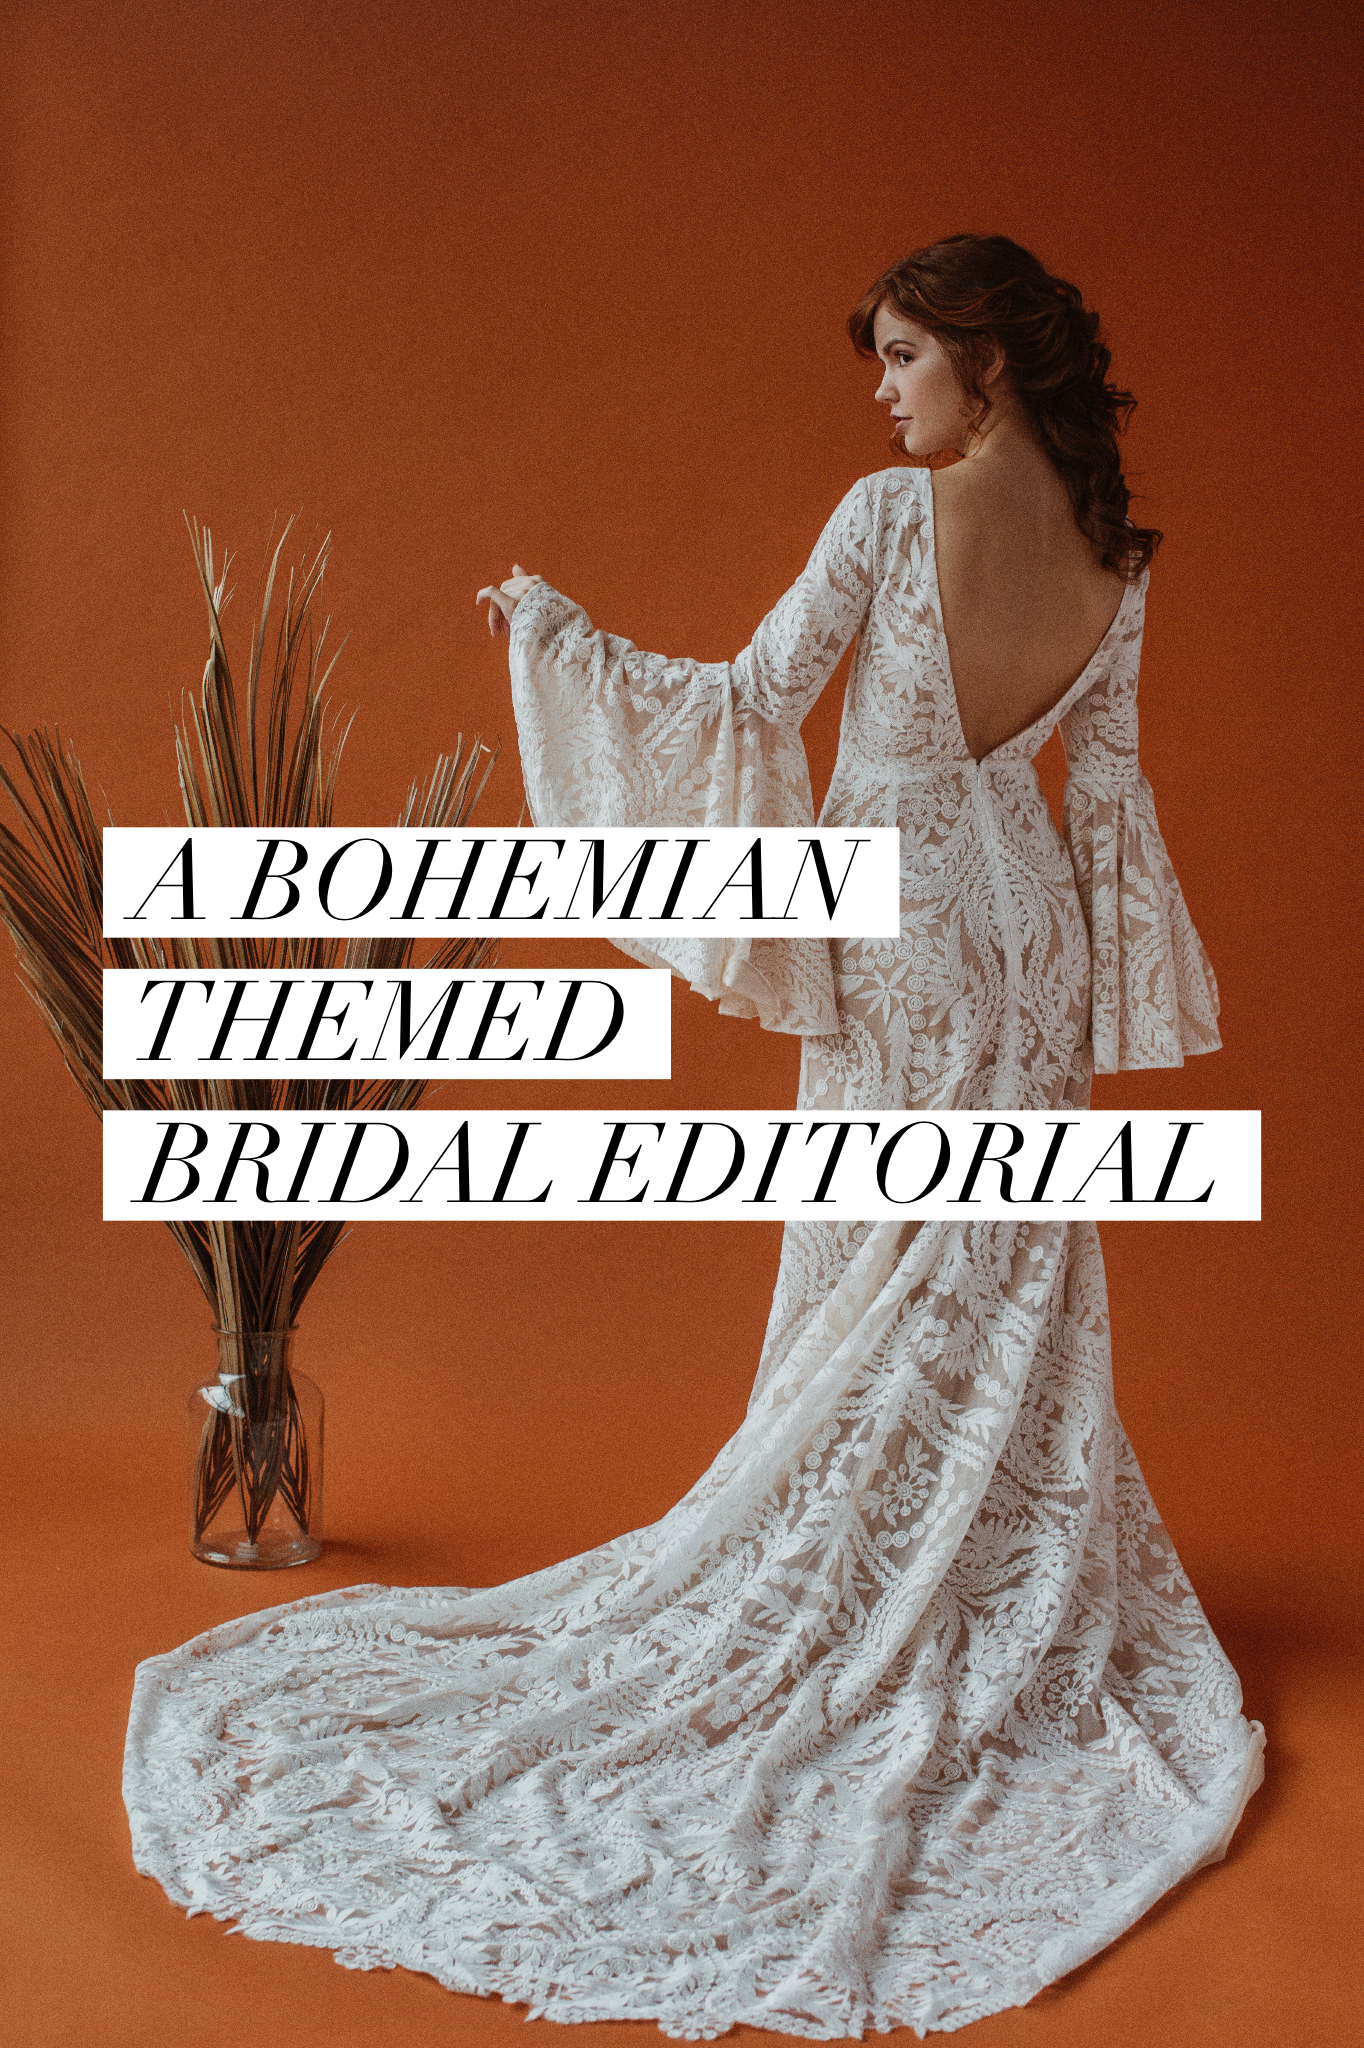 Bohemian Themed Bridal Editorial in the studio with colored paper